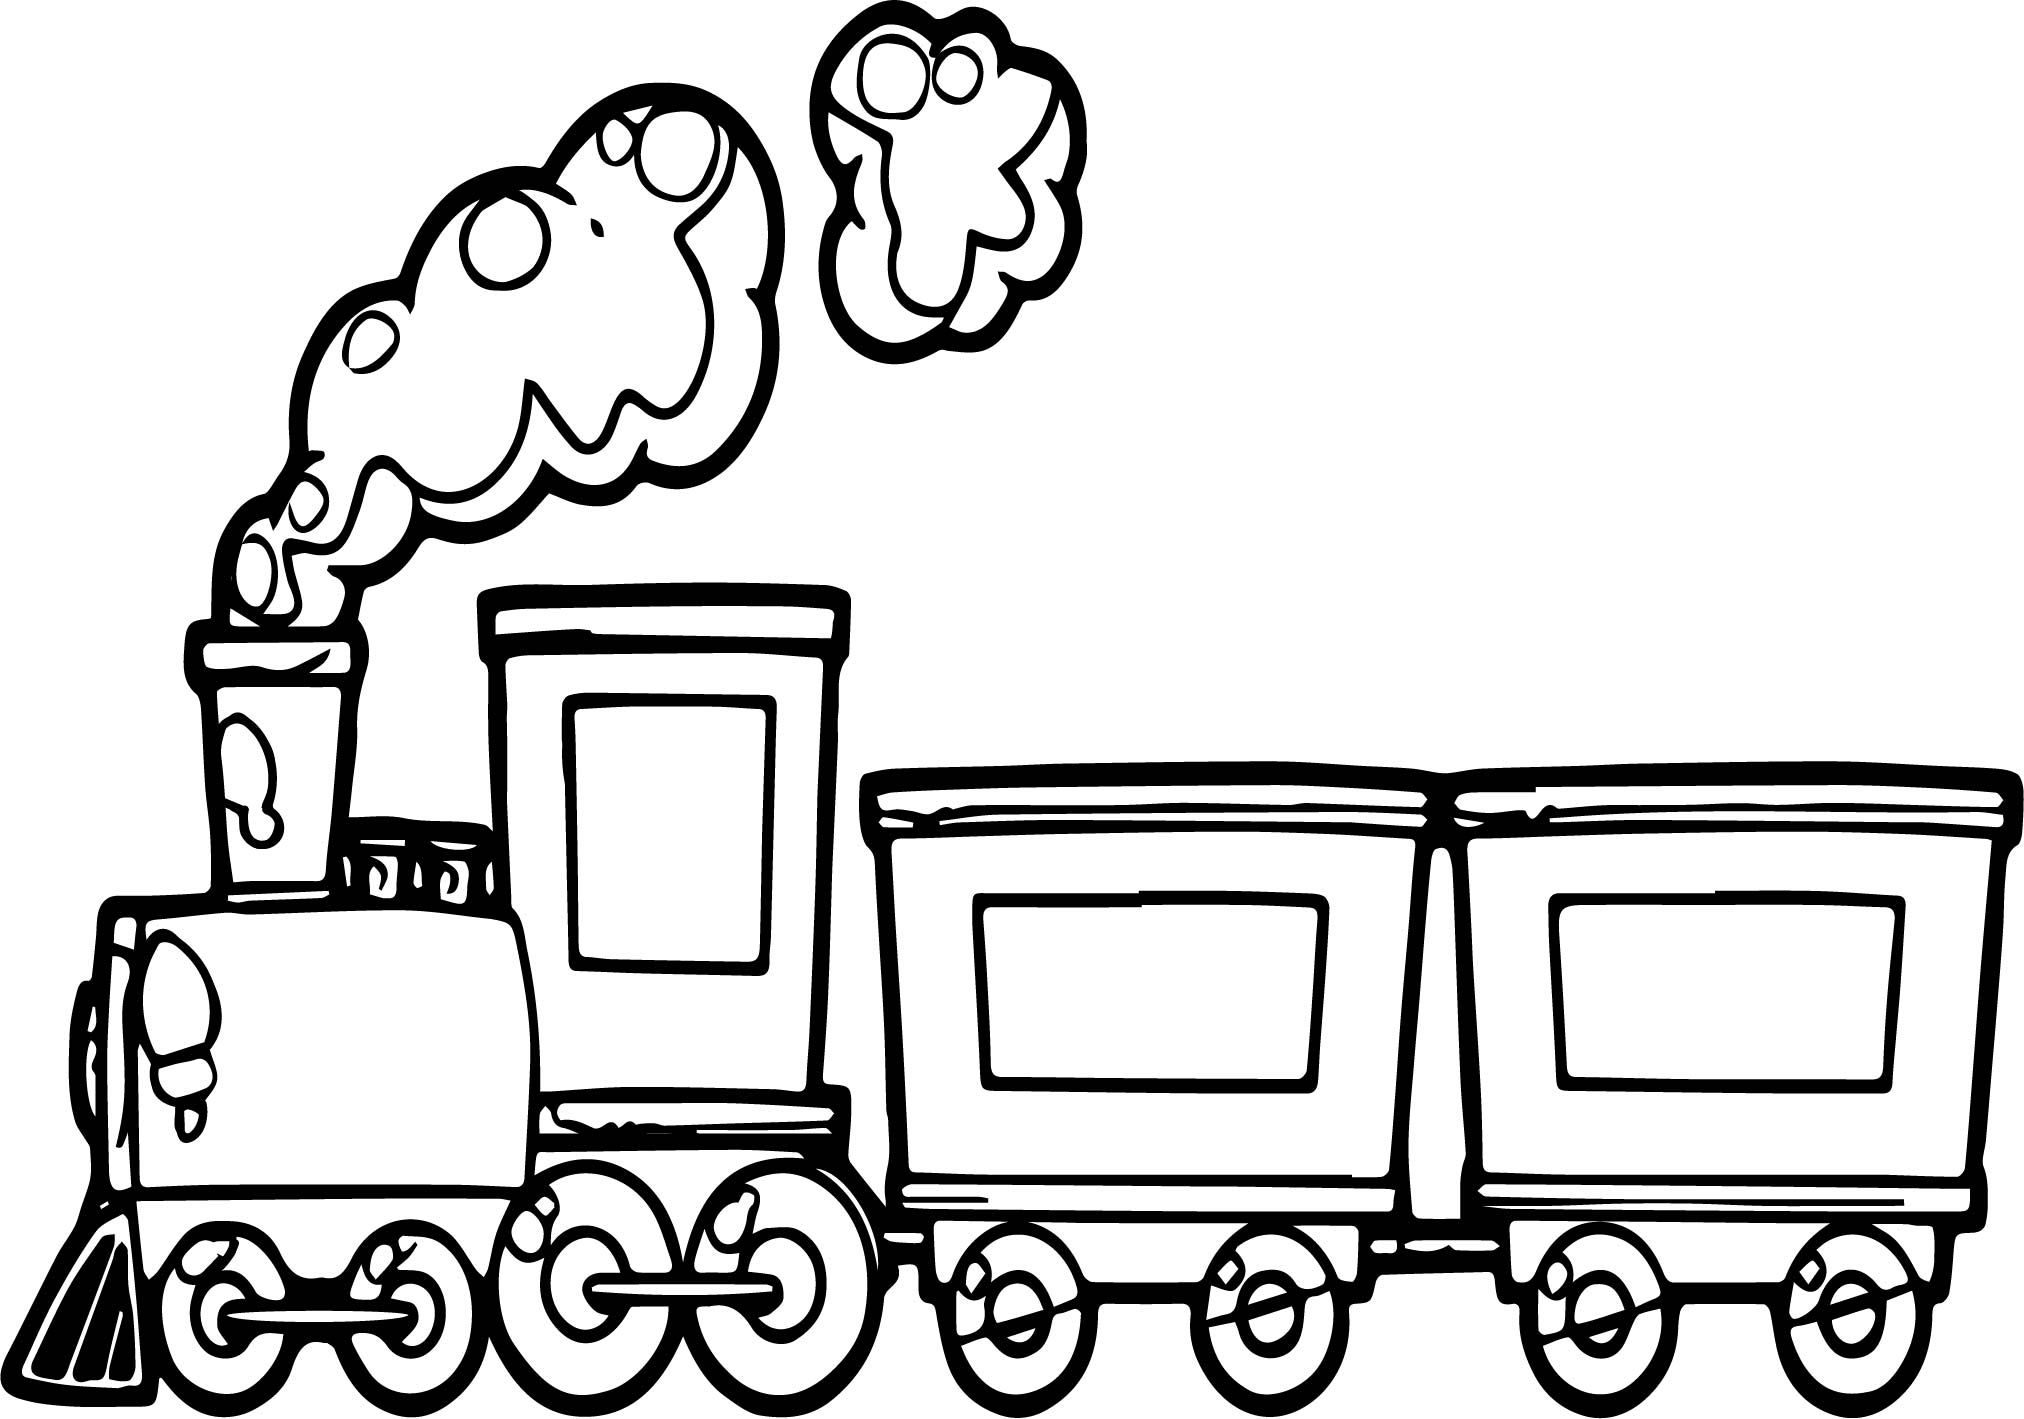 easy train coloring pages train with two carriages coloring page free printable train coloring easy pages